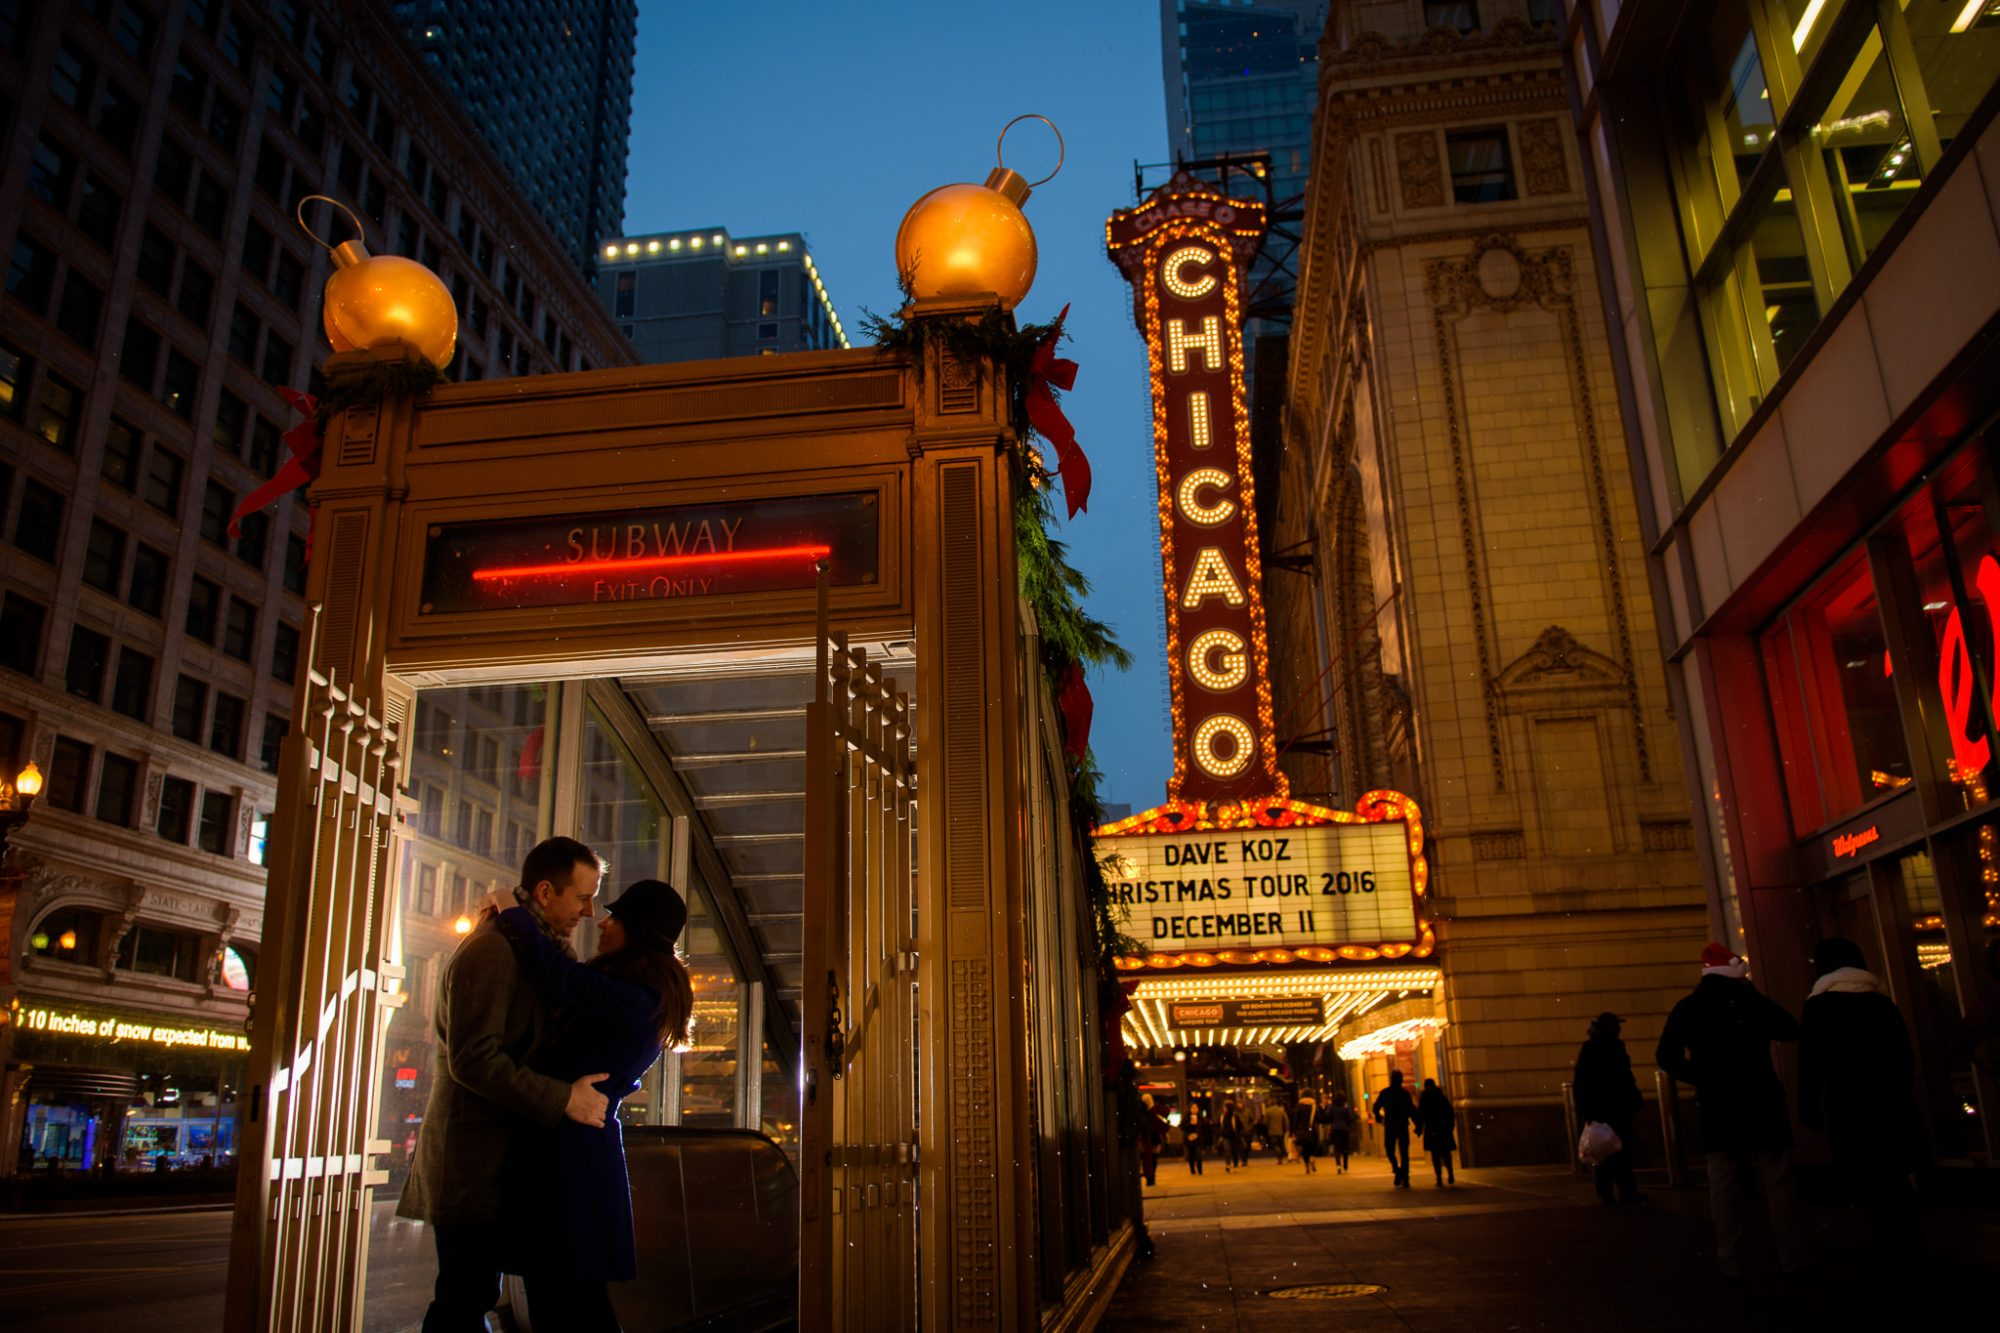 Chicago Engagement Subway Entrance Theatre